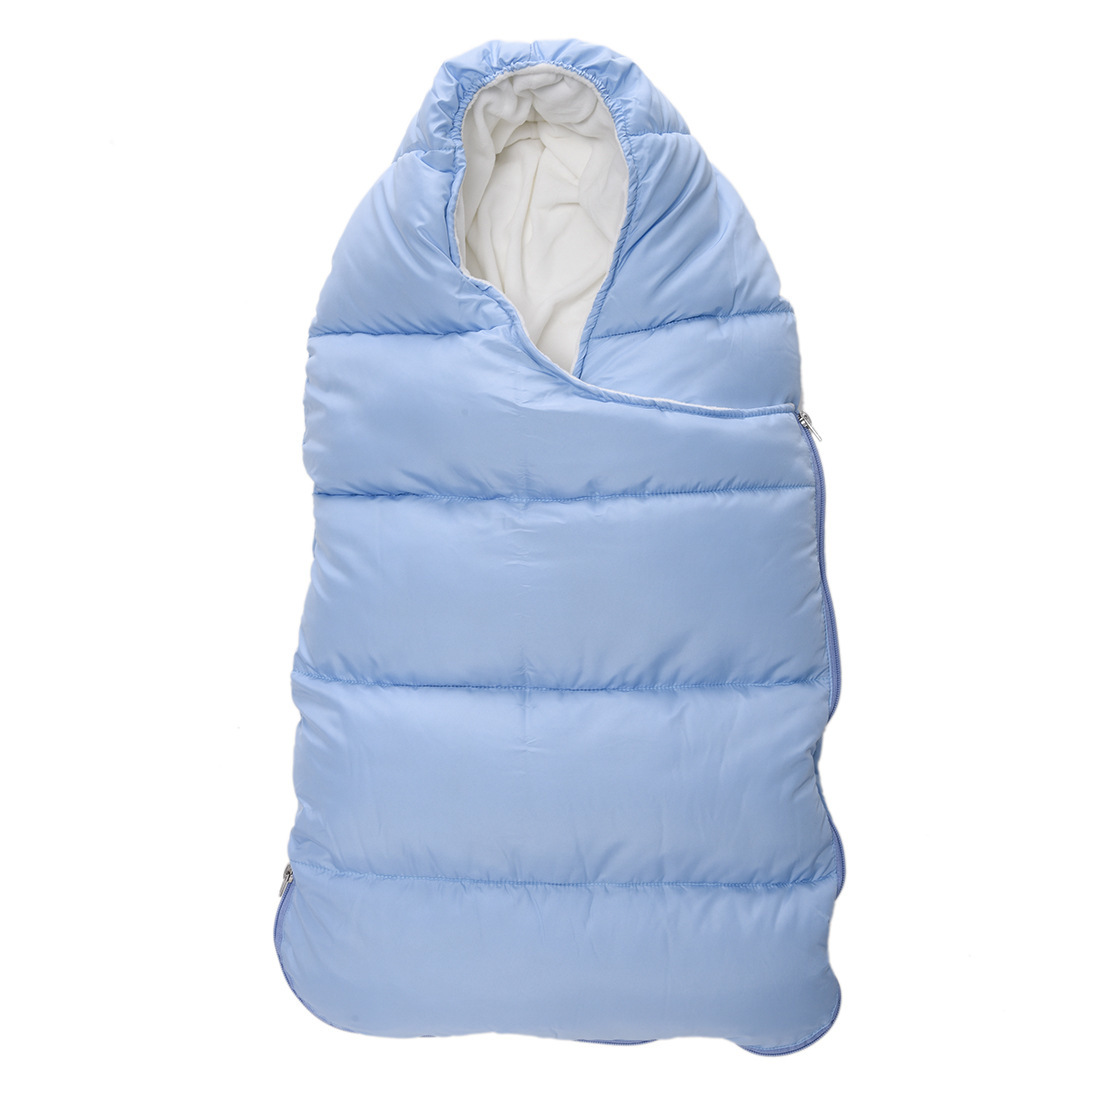 Syue Moon Baby Sleeping Bag Winter Envelope For Newborns Sleep Thermal Sack Cotton Kids Sleep Sack In The Carriage Wheelchairs цены